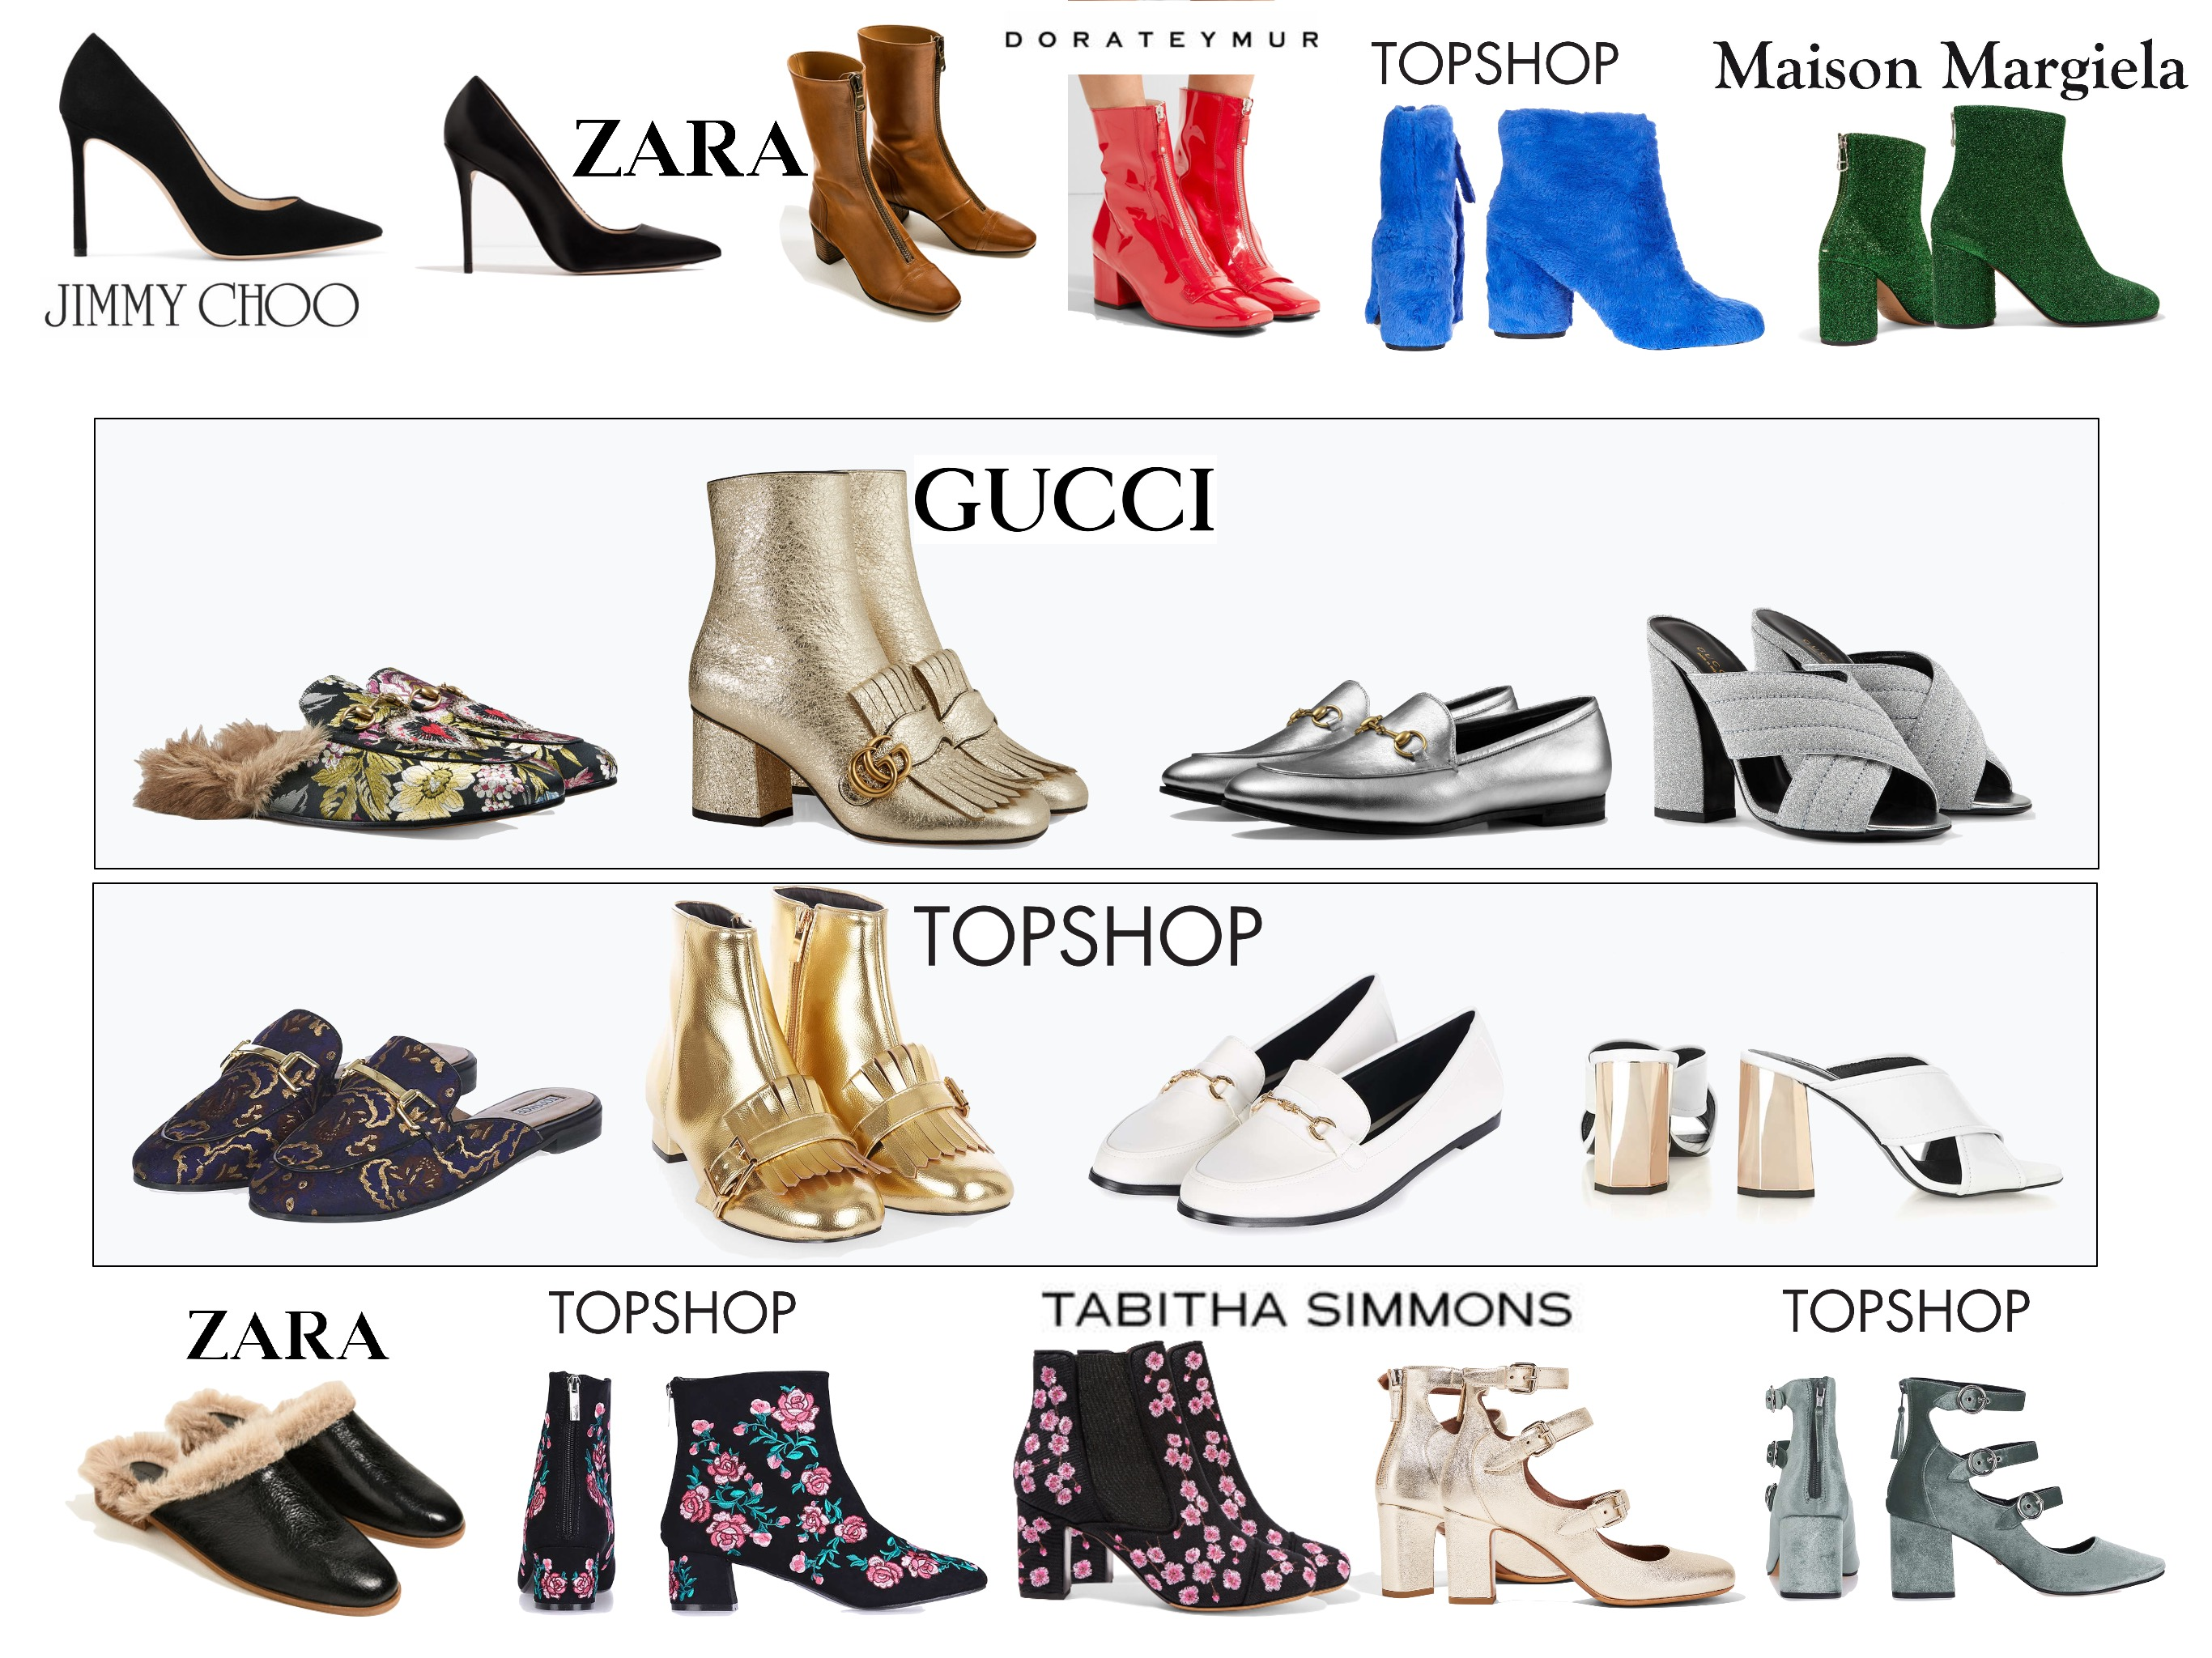 Affordable fall-winter 2016-2017 shoes inspired by Gucci, Maison Margiela, Tabitha Simmons, Jimmy Choo, Dorateymur